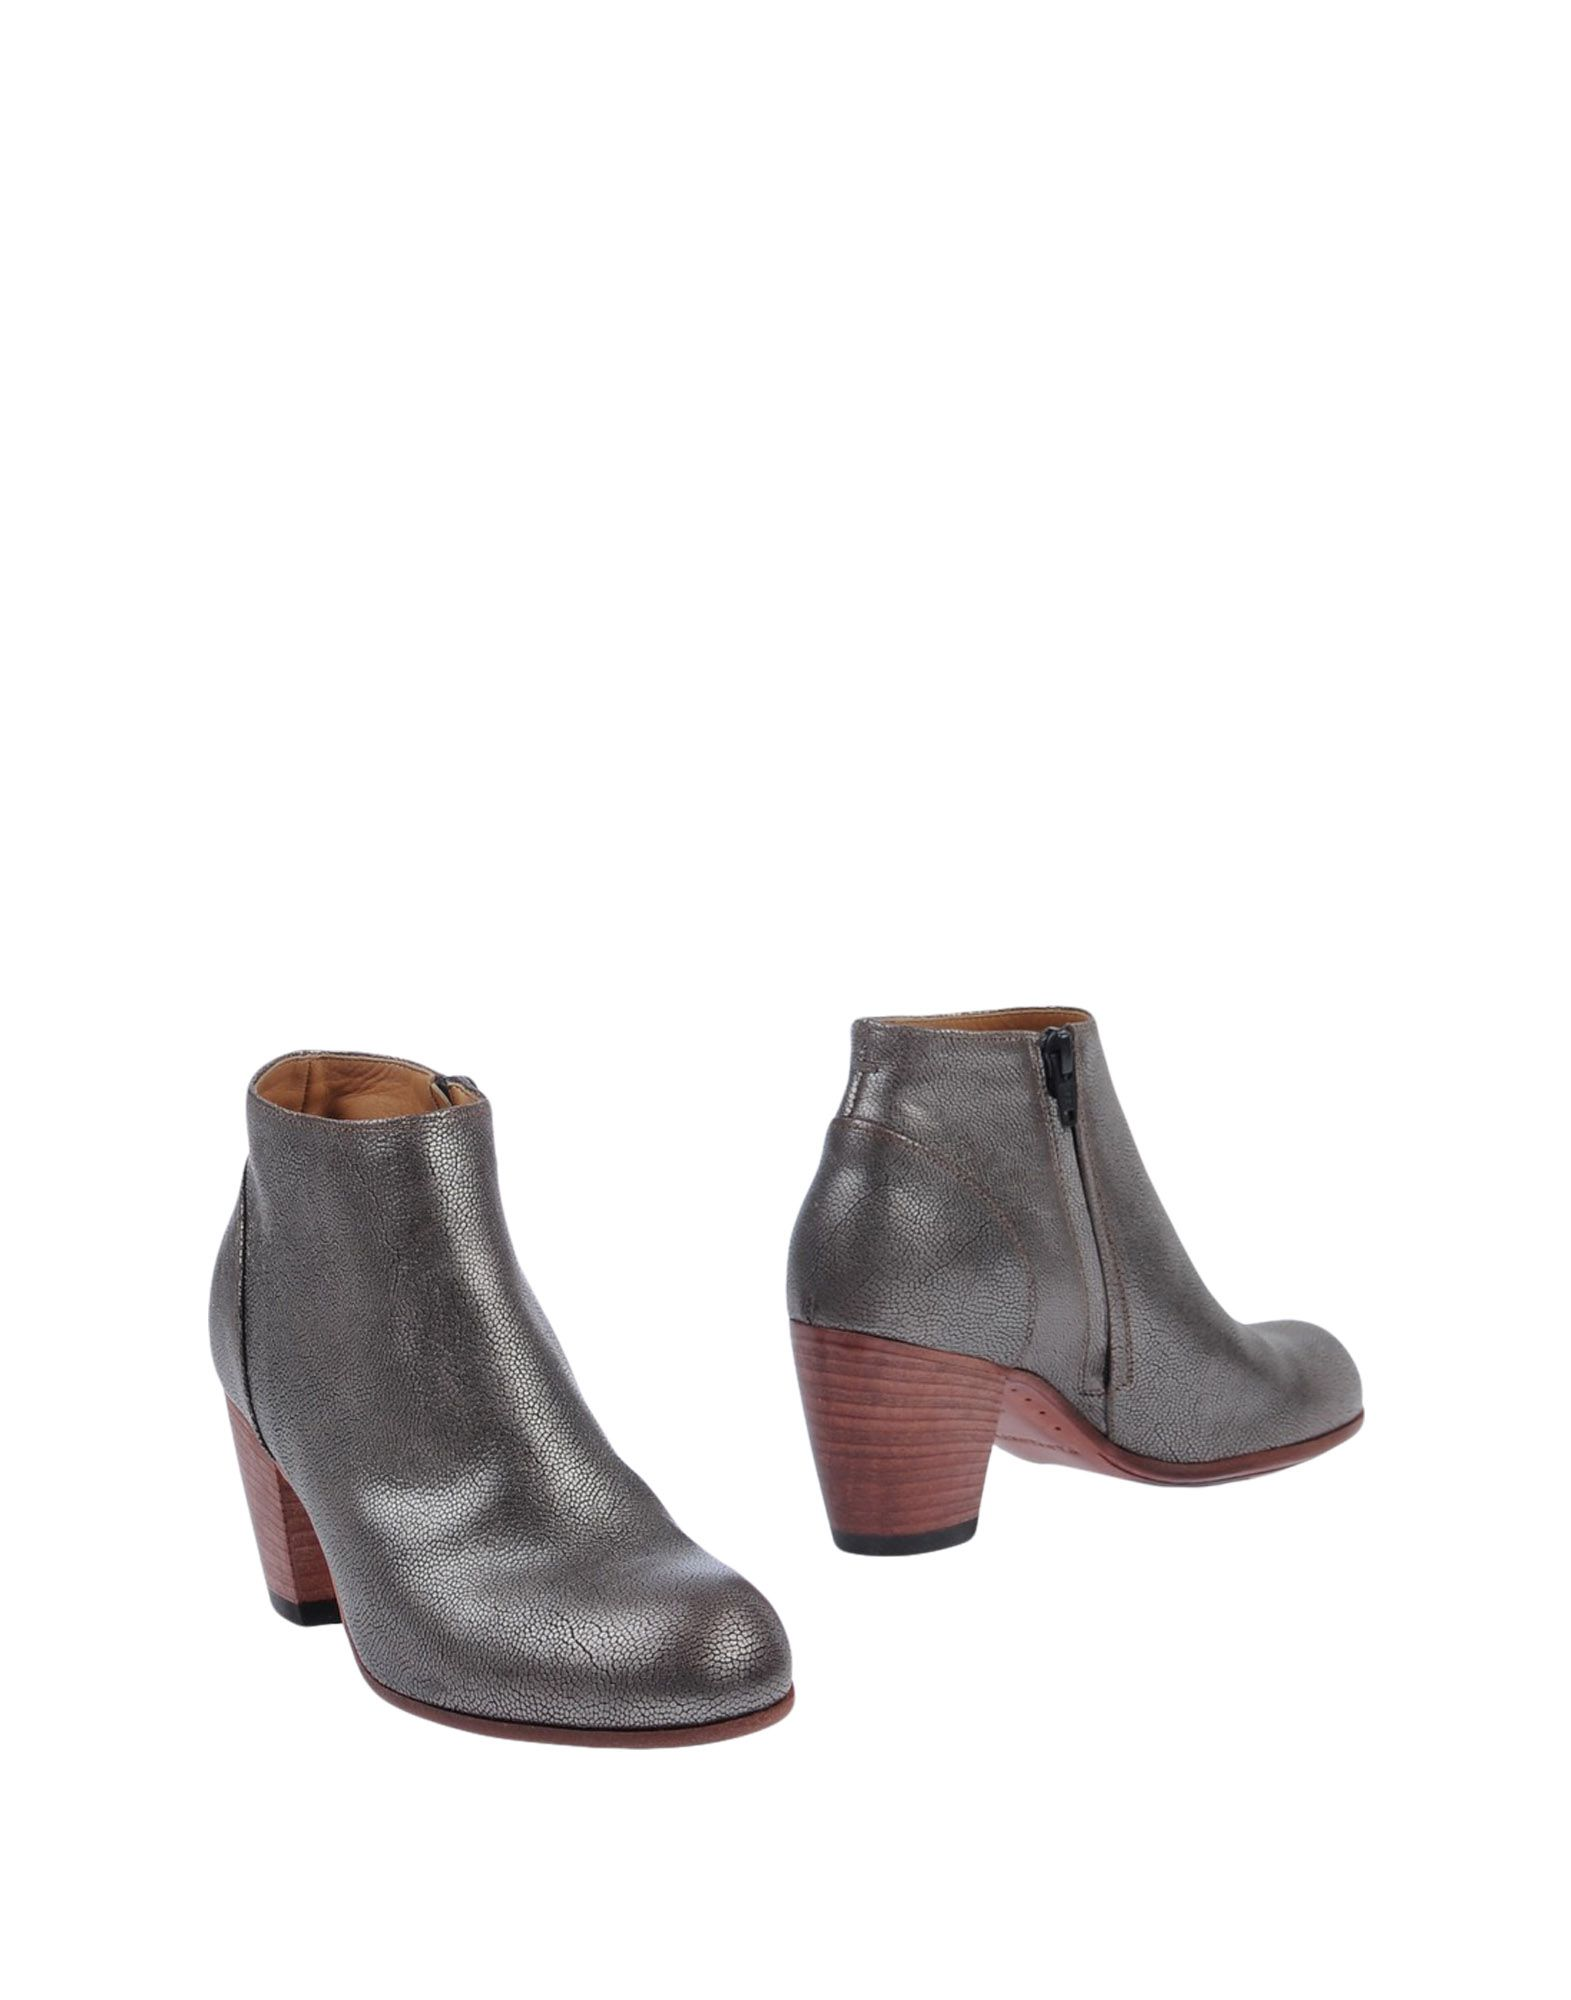 Pantanetti Ankle Ankle Boot - Women Pantanetti Ankle Ankle Boots online on  Canada - 11507792FL 34dd1b